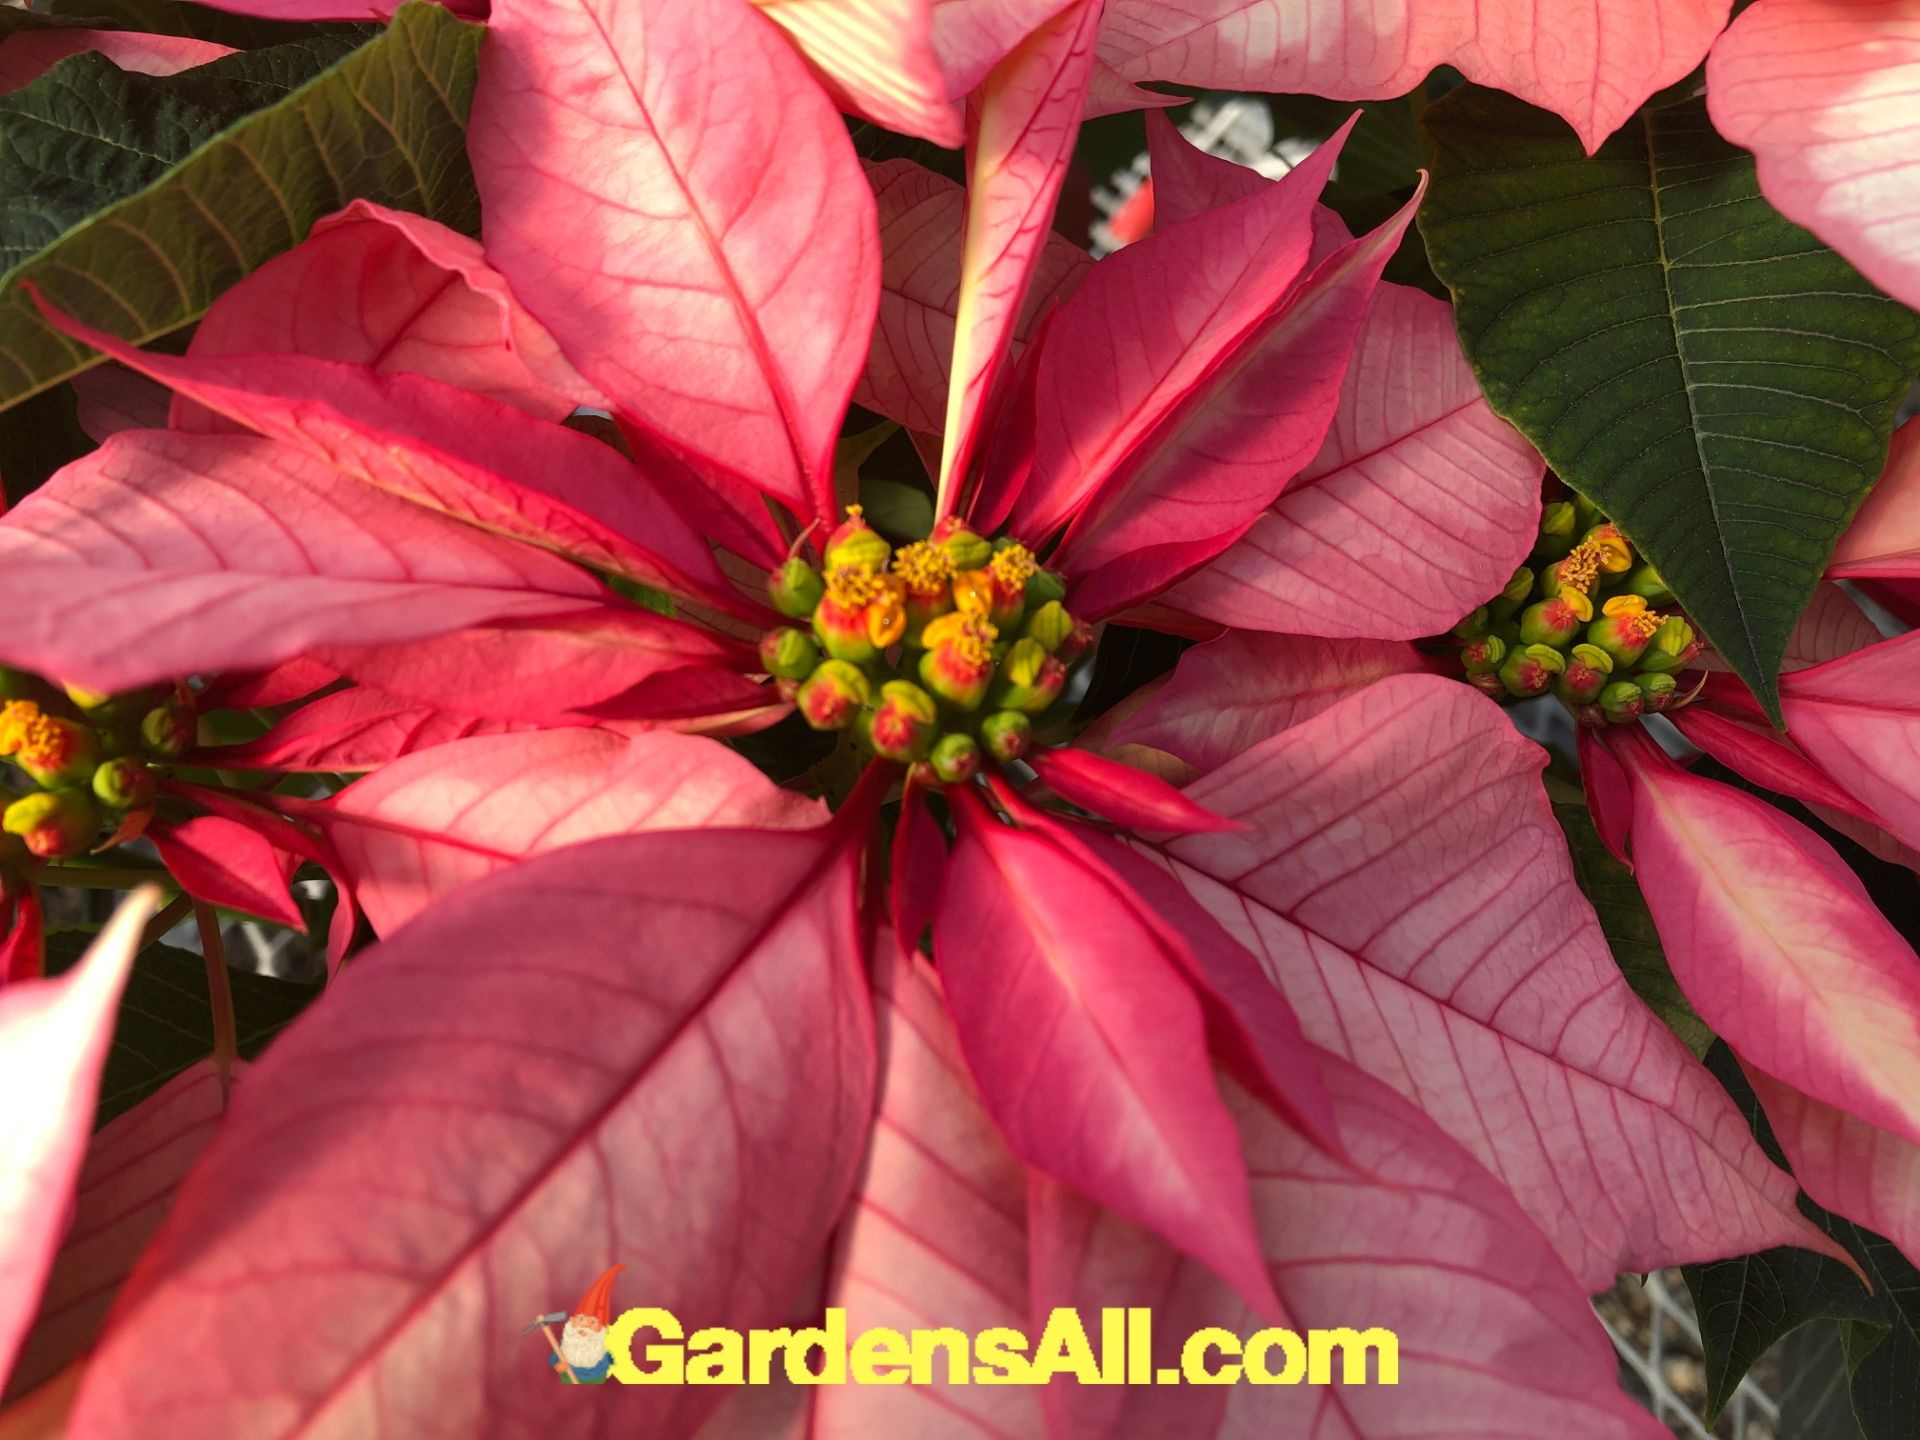 poinsettia flowers, poinsettia bract, poinsettia leaves